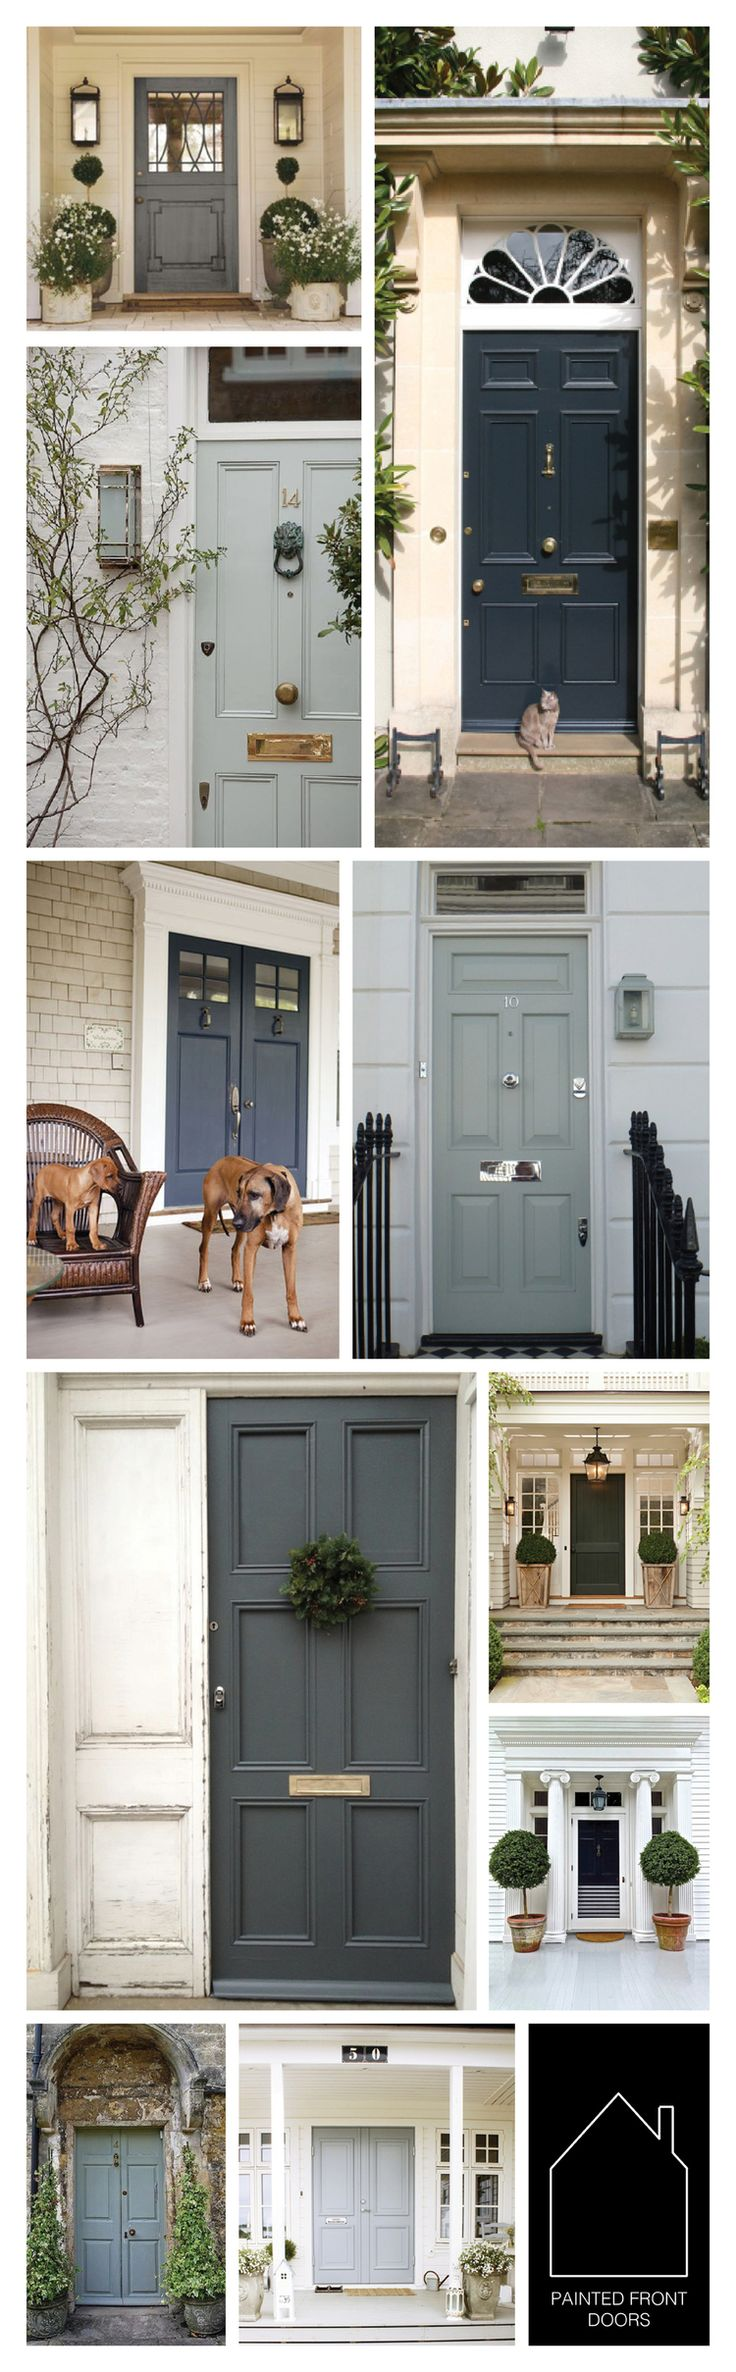 Painted front doors with sidelights - Painted Front Doors